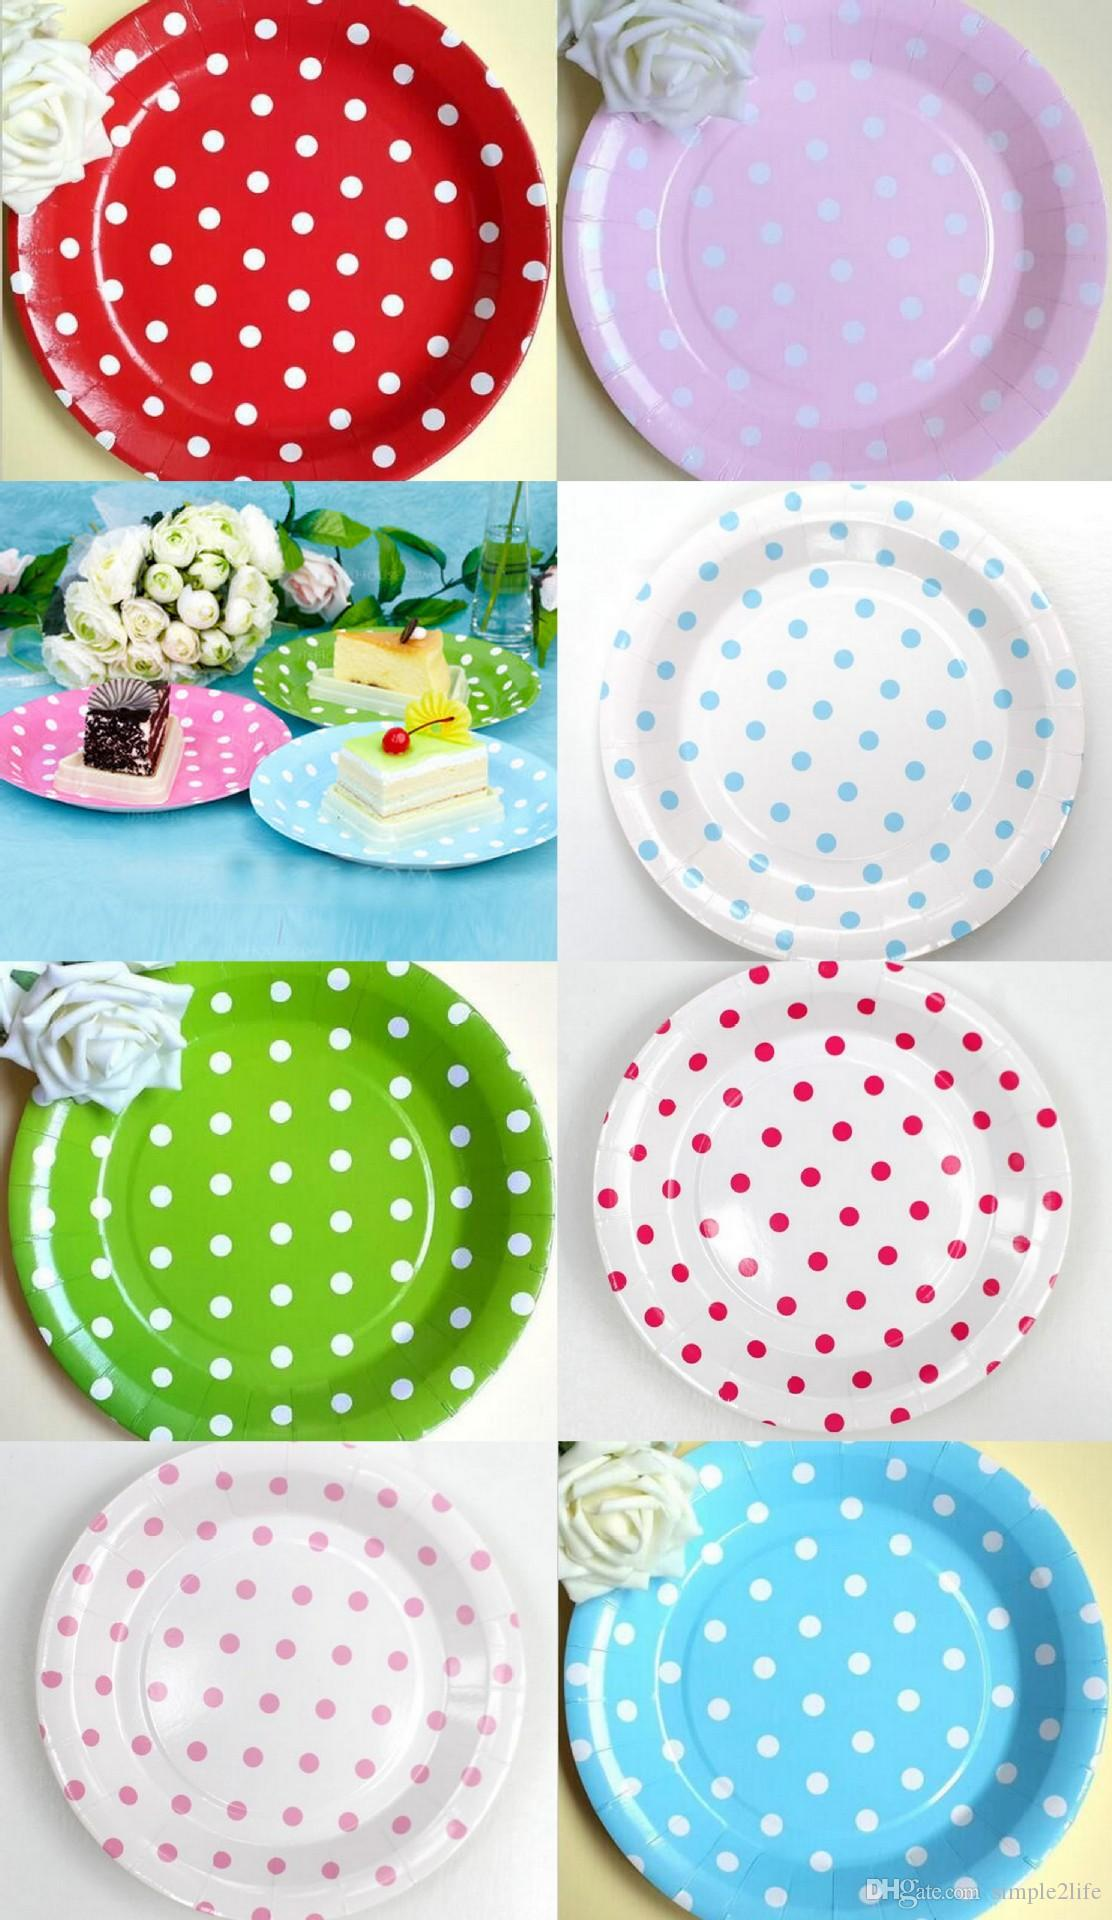 9 Inch Polka Dot Paper Disposable Plates for Party Birthday Paper Plates Decor Wedding Christams Supplies Tableware Paper Plates Candy Dot Tableware Online ...  sc 1 st  DHgate.com & 9 Inch Polka Dot Paper Disposable Plates for Party Birthday Paper ...